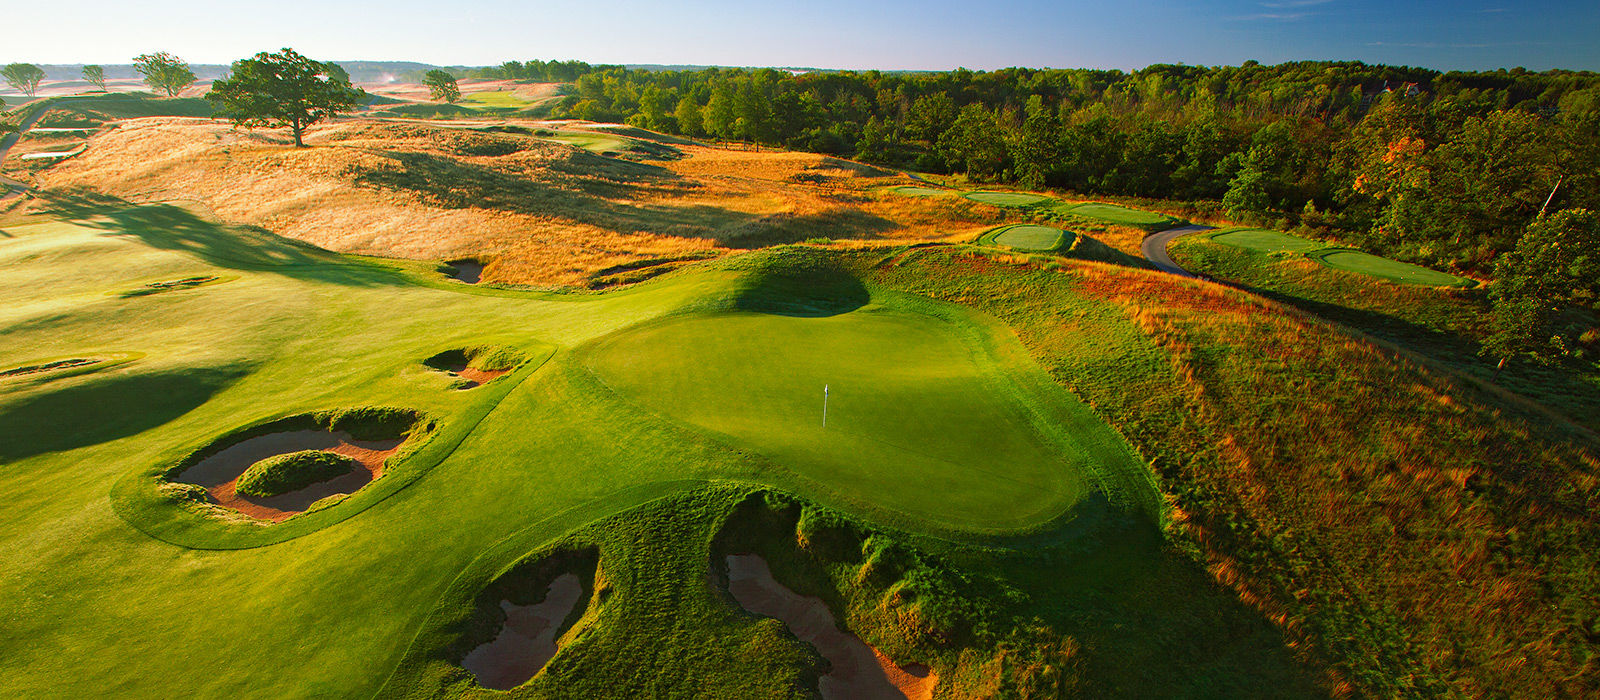 Erin hills golf course cover picture